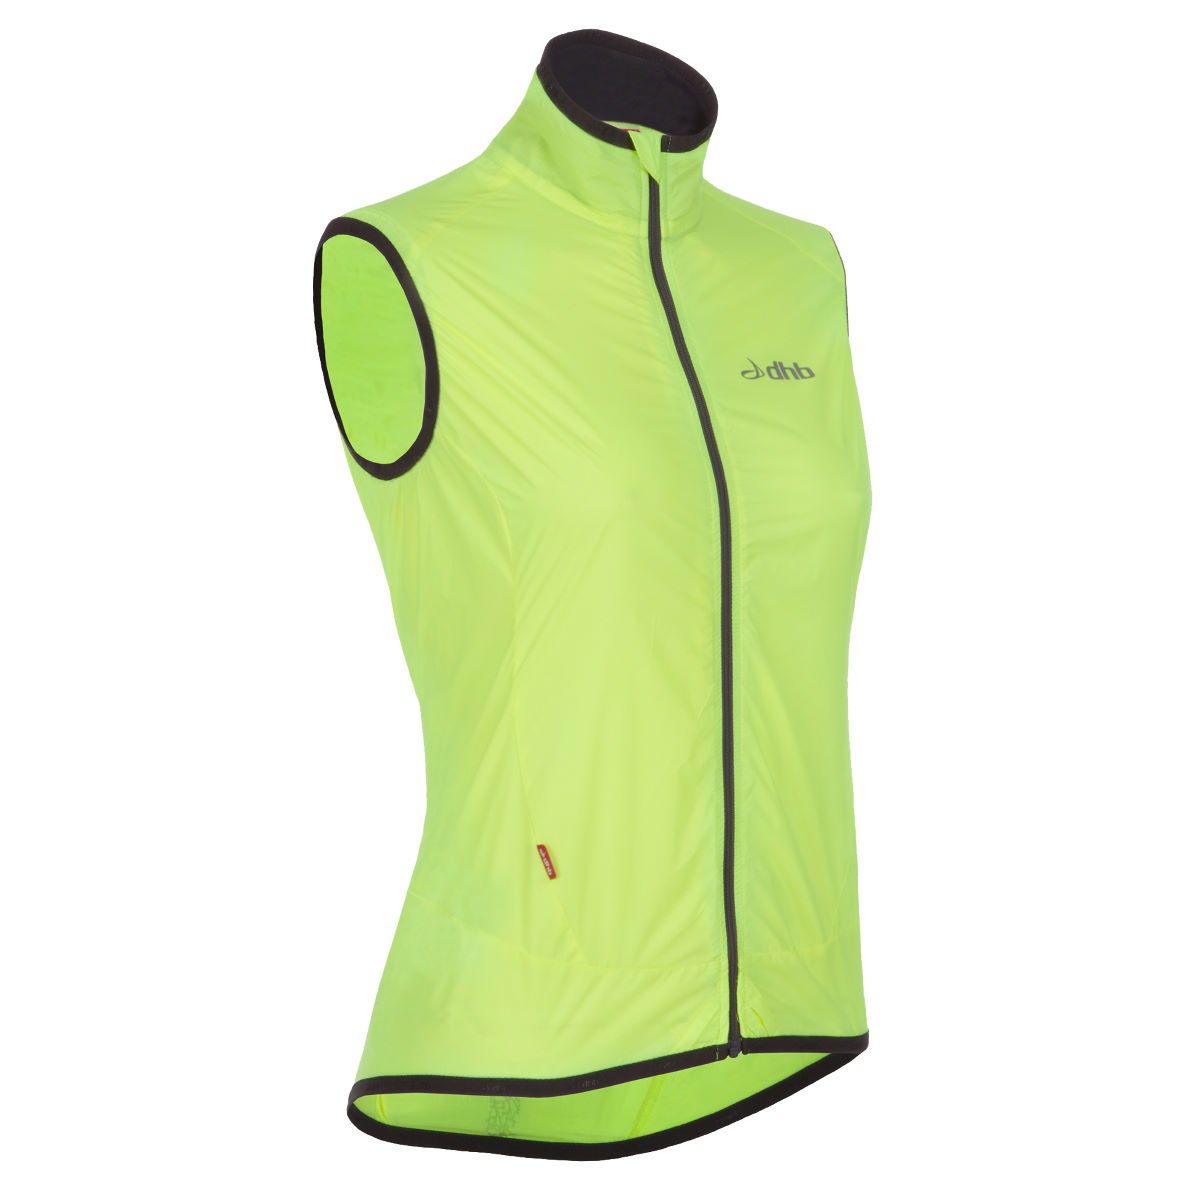 dhb Women's Wisp Fluro Windproof Gilet